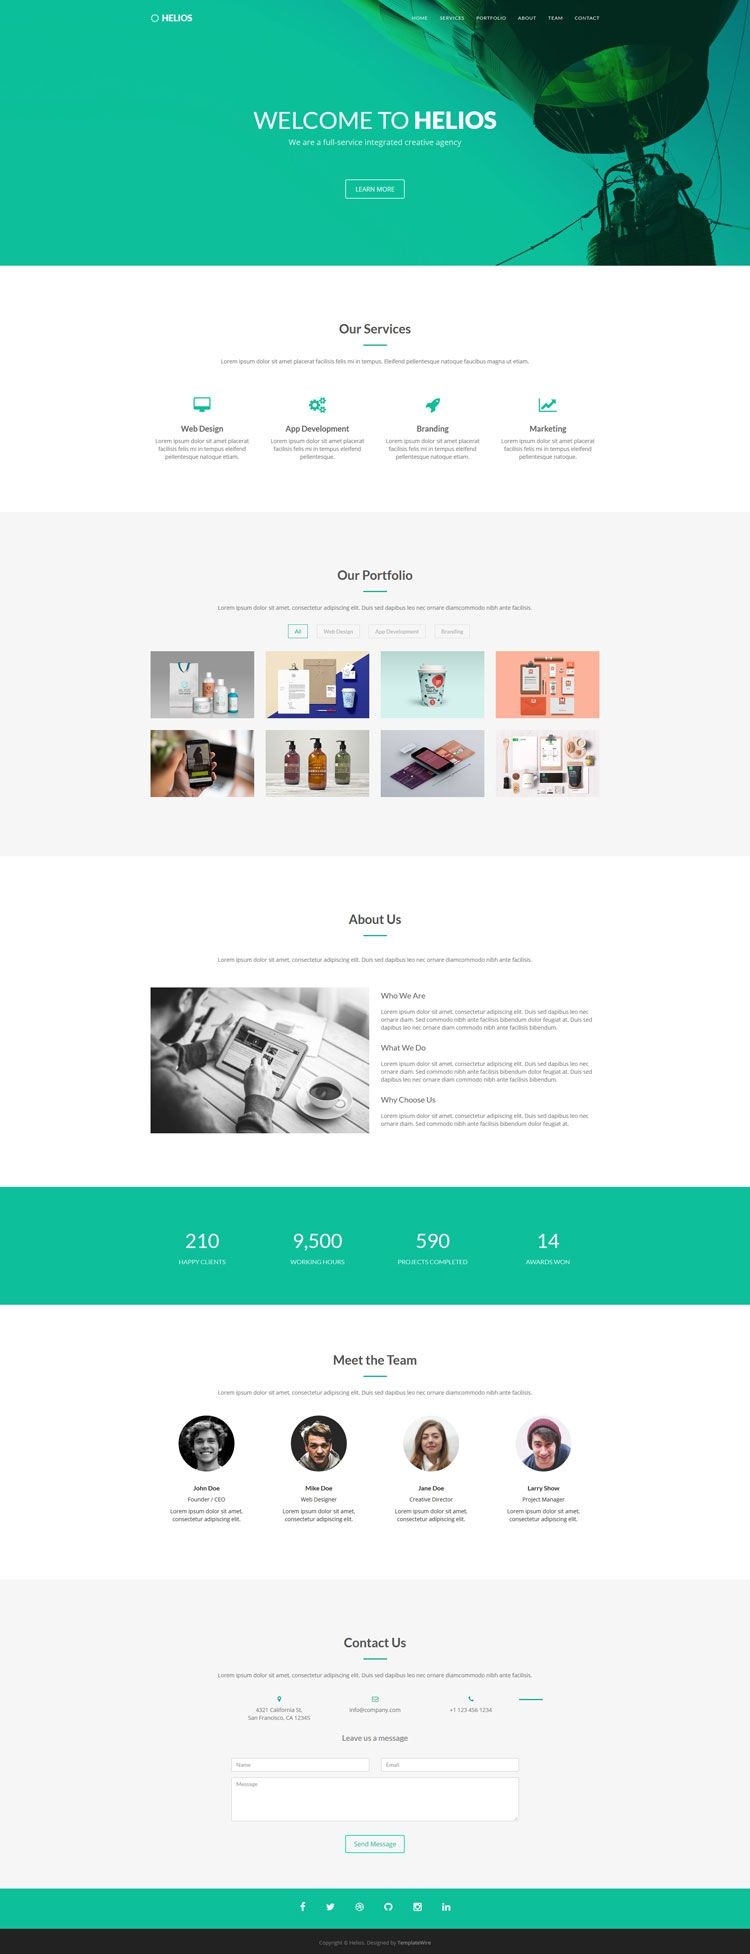 Helios - Free One Page Agency Template | TemplateWire | Pinterest ...